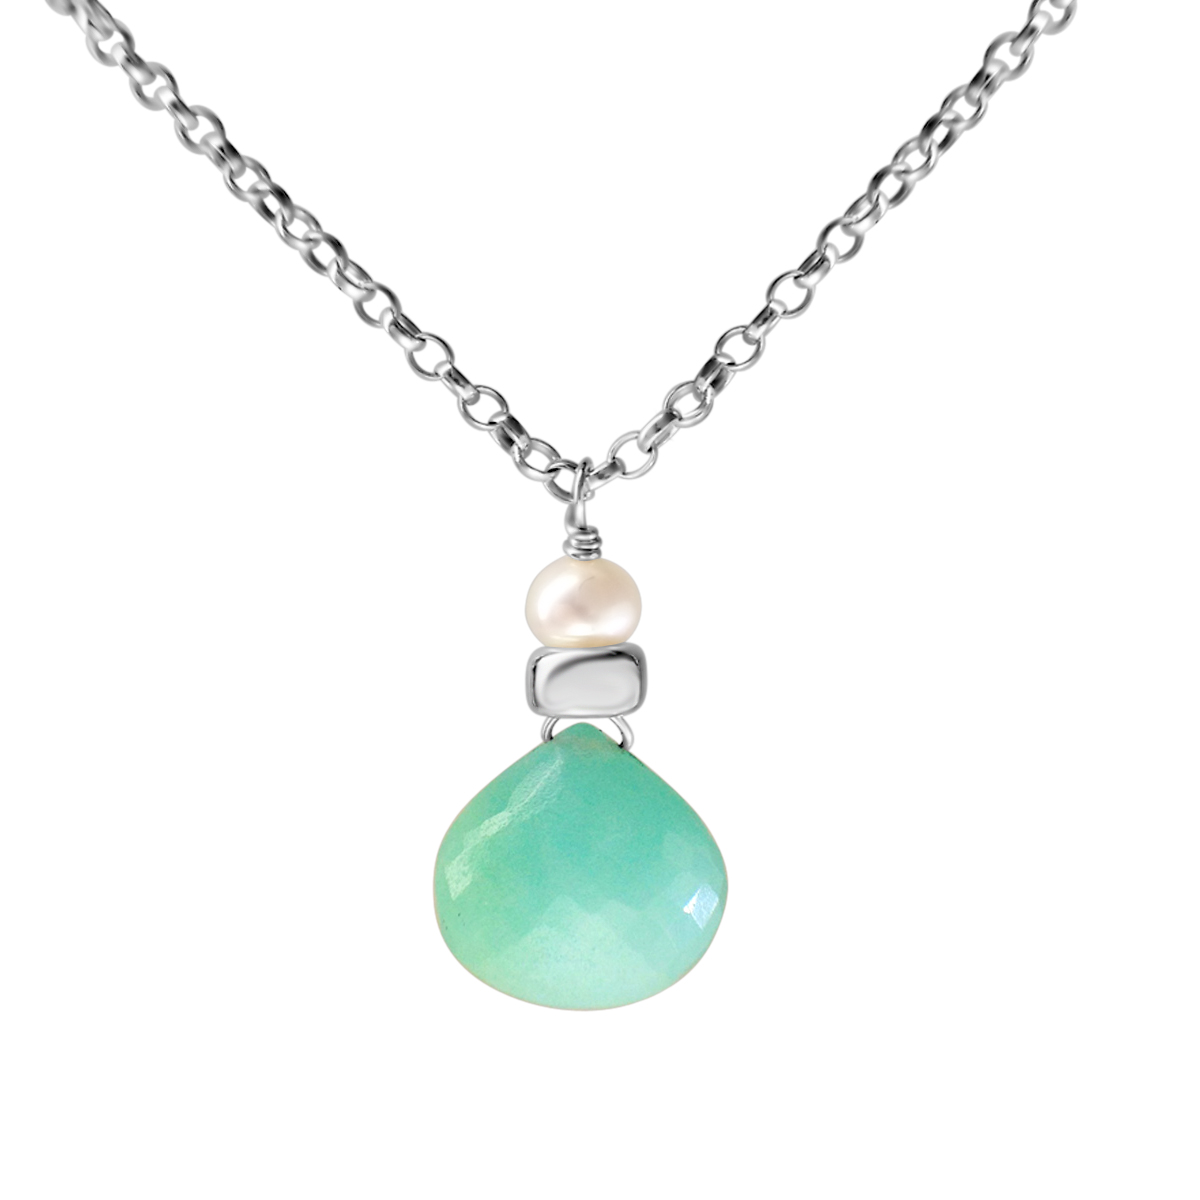 Perfume Bottle amazonite and white pearl necklace